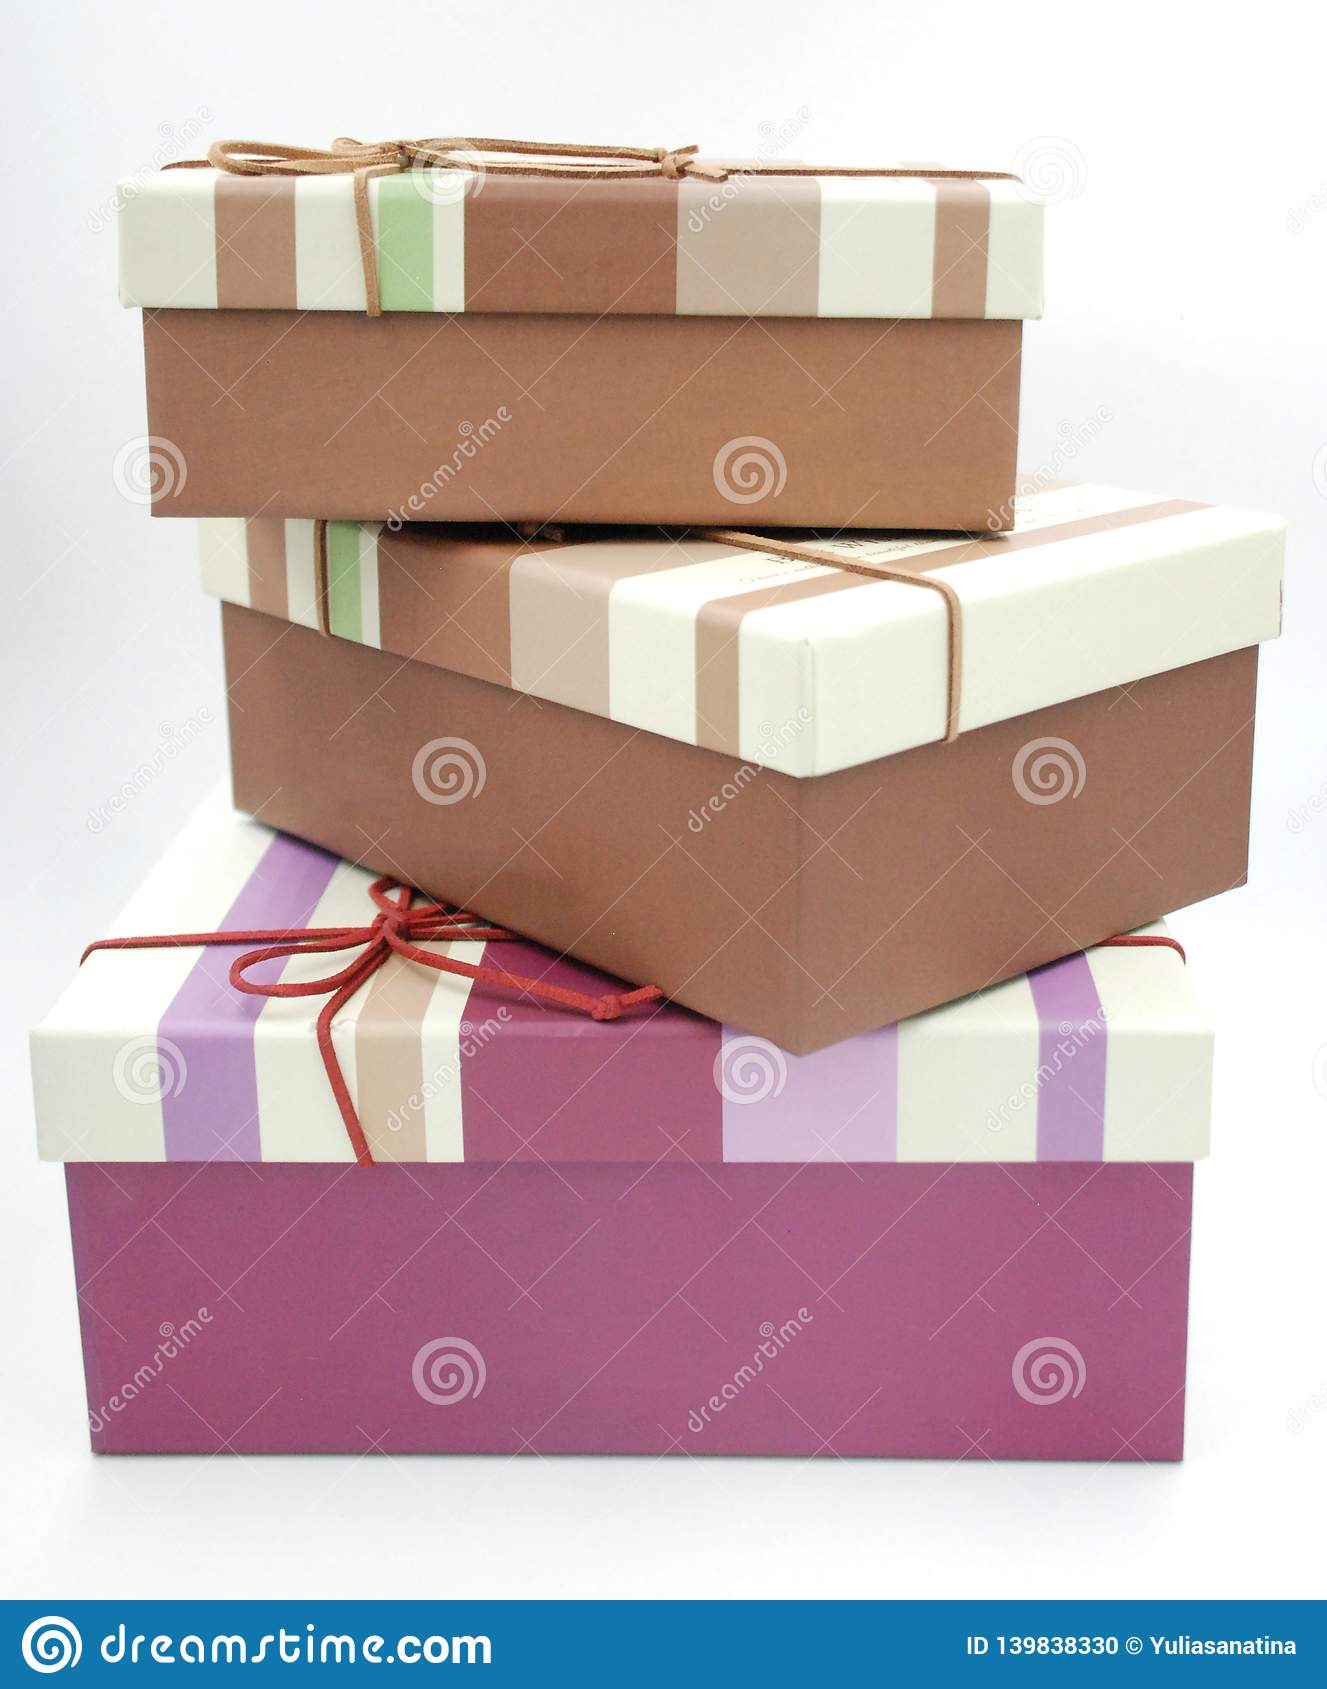 Three gift boxes with the bow tie on the top